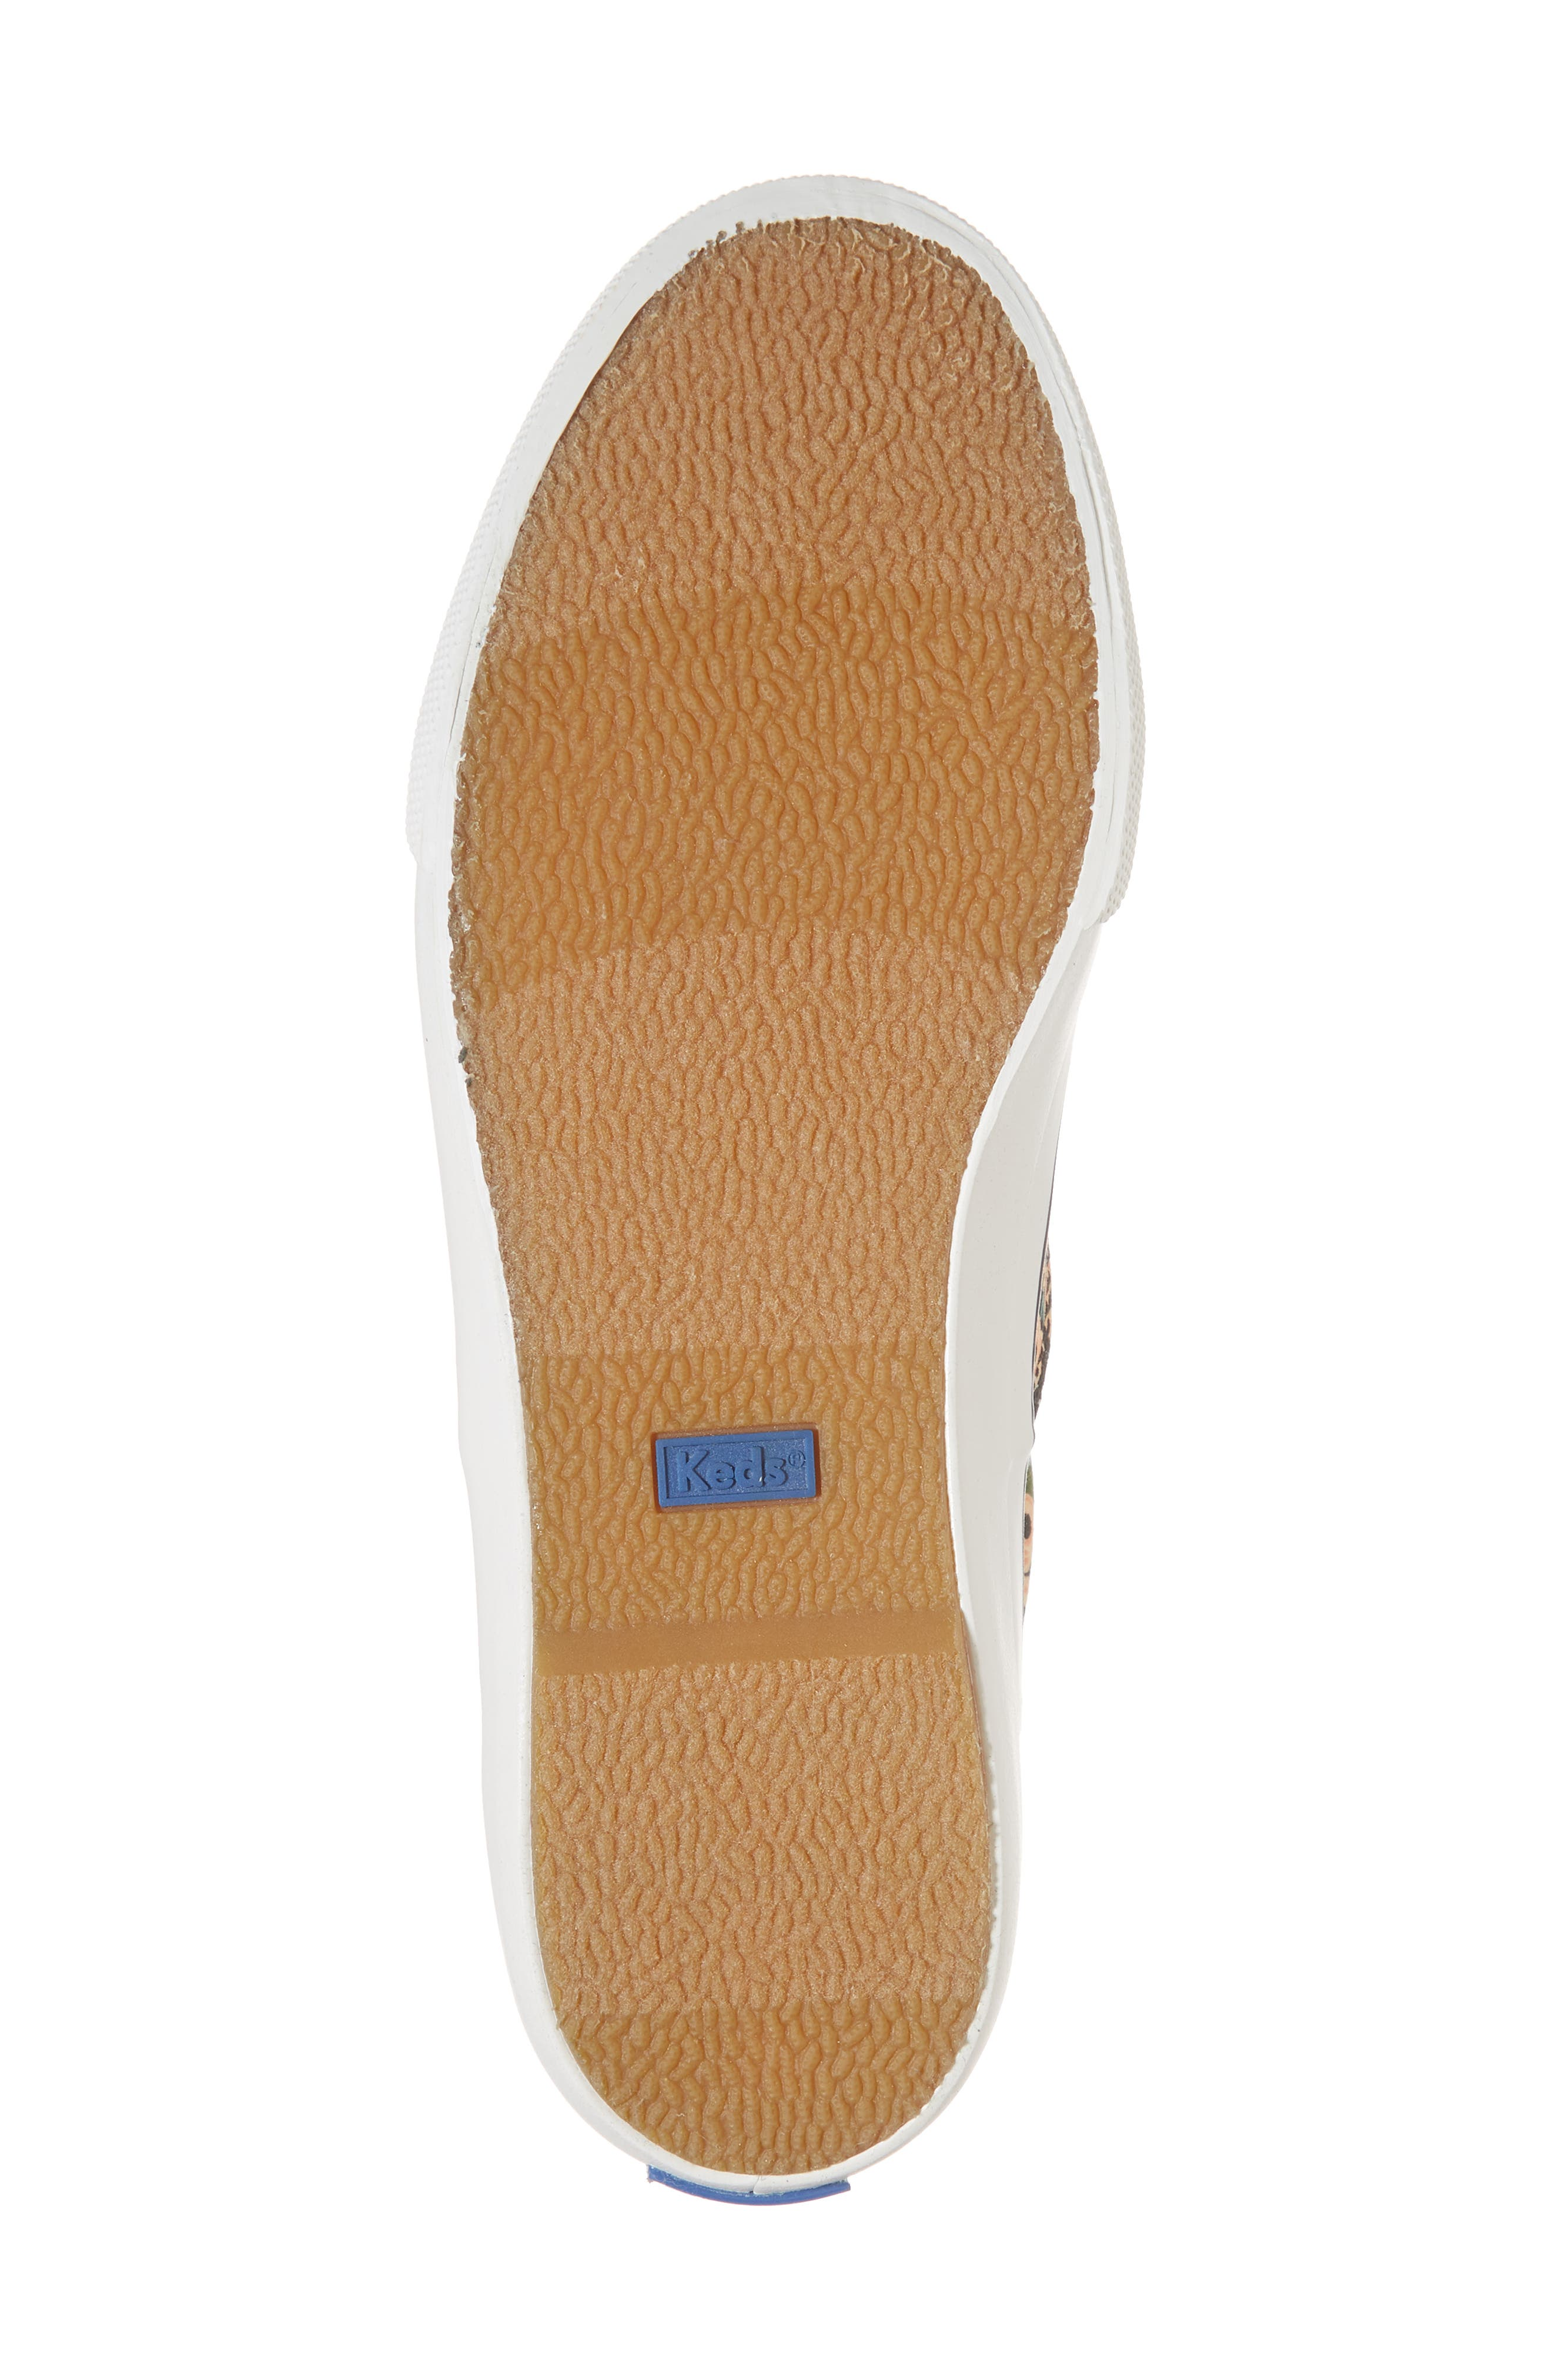 KEDS<SUP>®</SUP>, x Rifle Paper Co. Anchor Lively Floral Slip-On Sneaker, Alternate thumbnail 6, color, BLACK